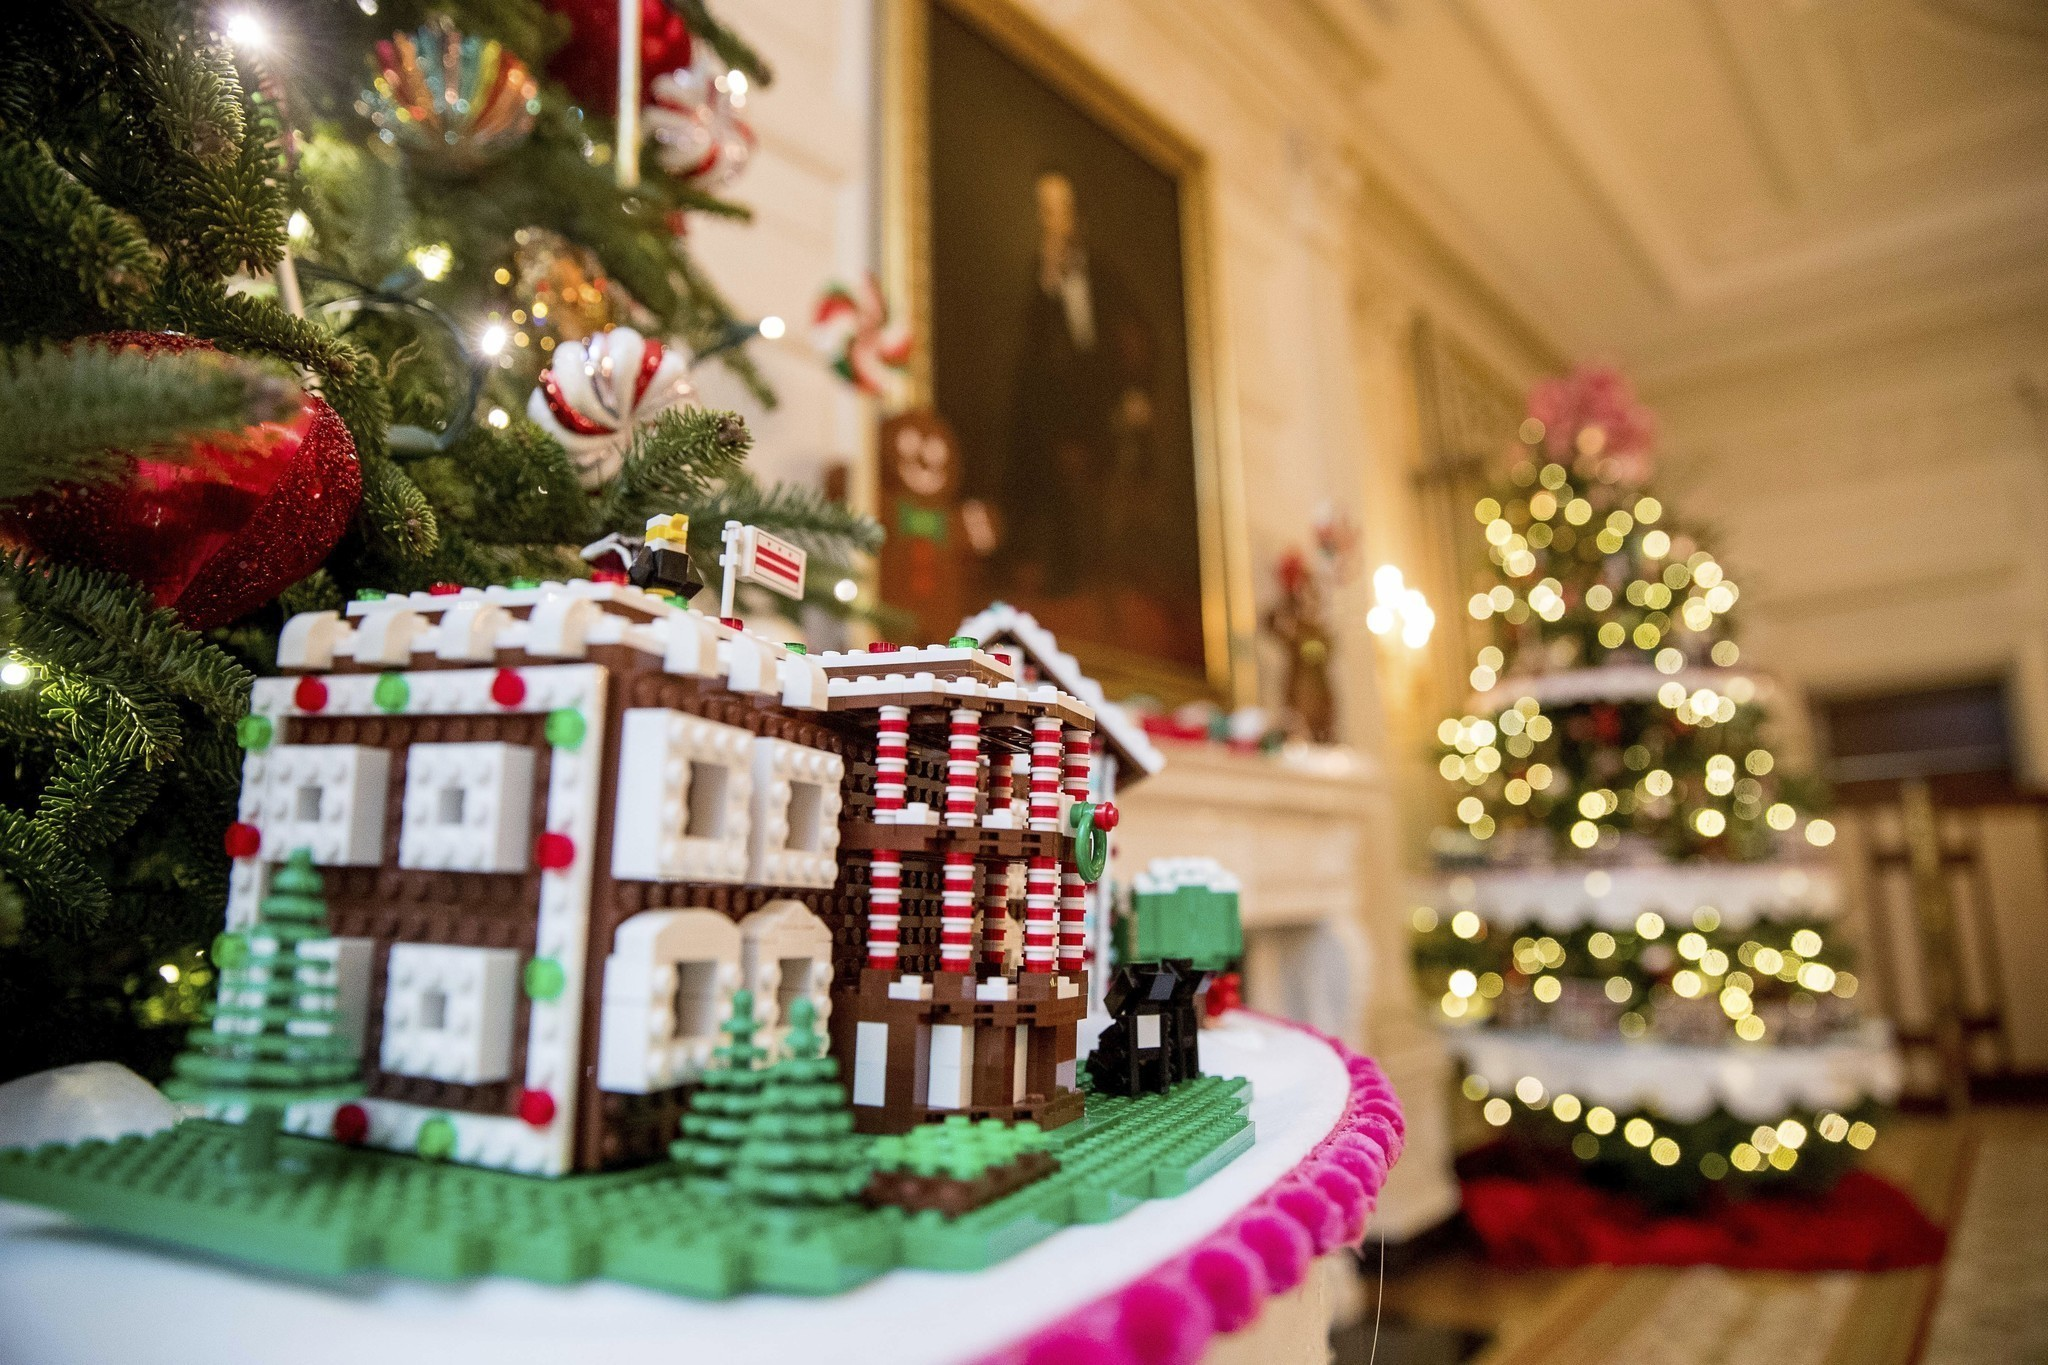 Holiday decorations at the white house are displayed during a press - Legos Gingerbread And Gumdrops How The Obamas Decorated The White House For The Holidays One Last Time La Times